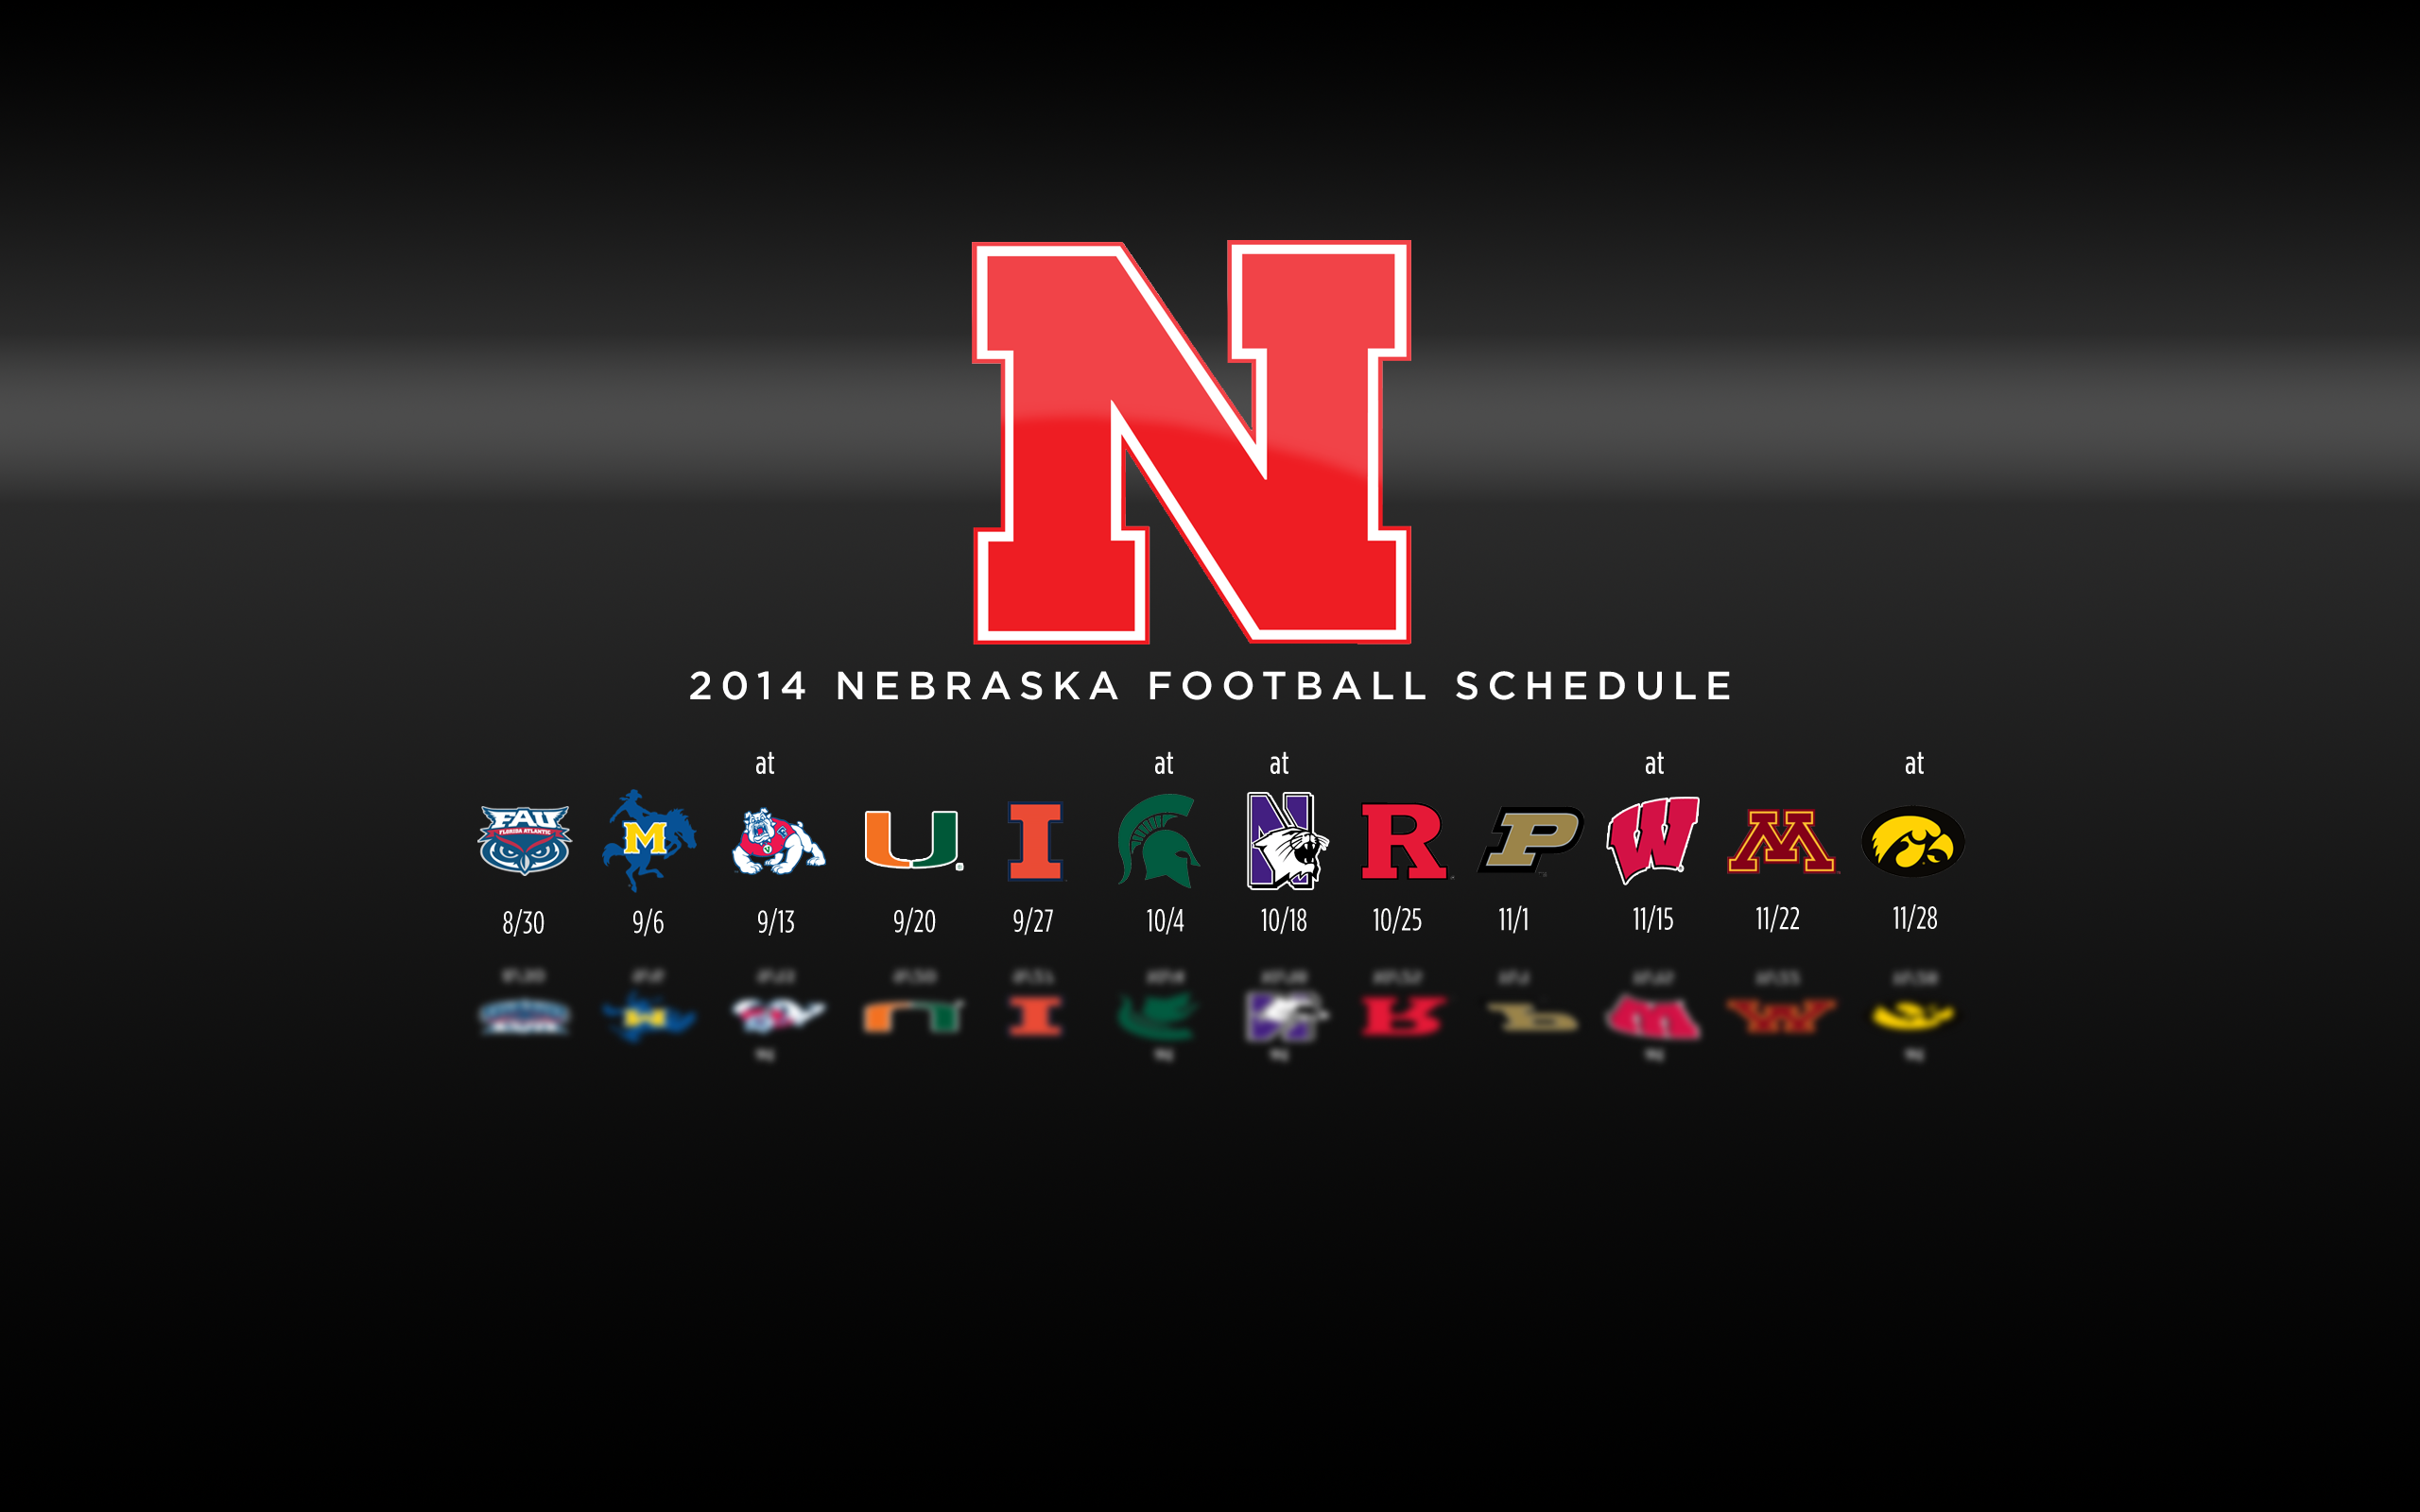 Black Background 2014 Nebraska Football Schedule Wallpaper 2560x1600